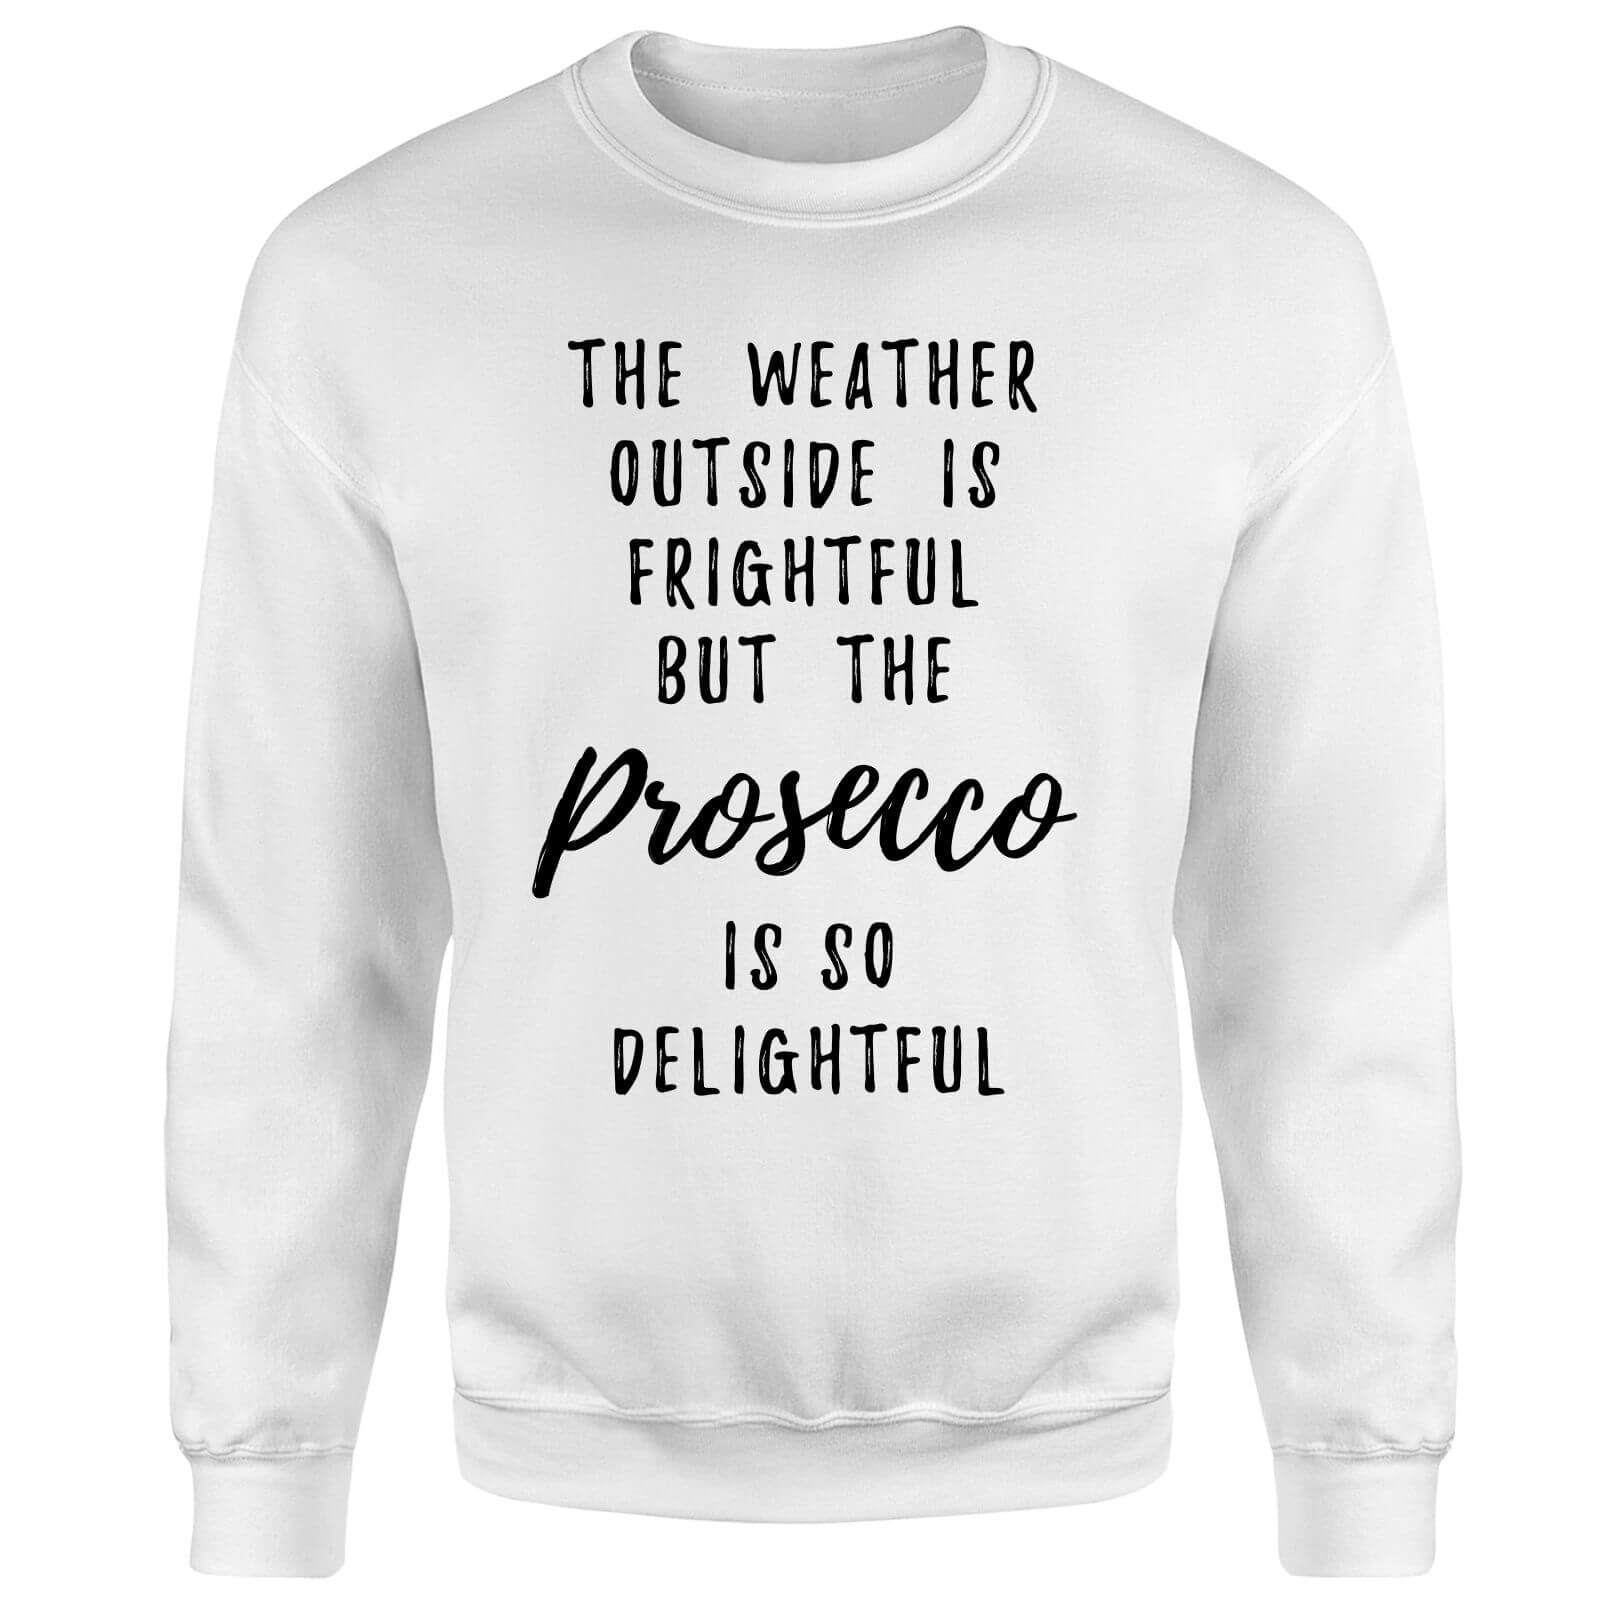 Prosecco Is So Delightful Sweatshirt - White